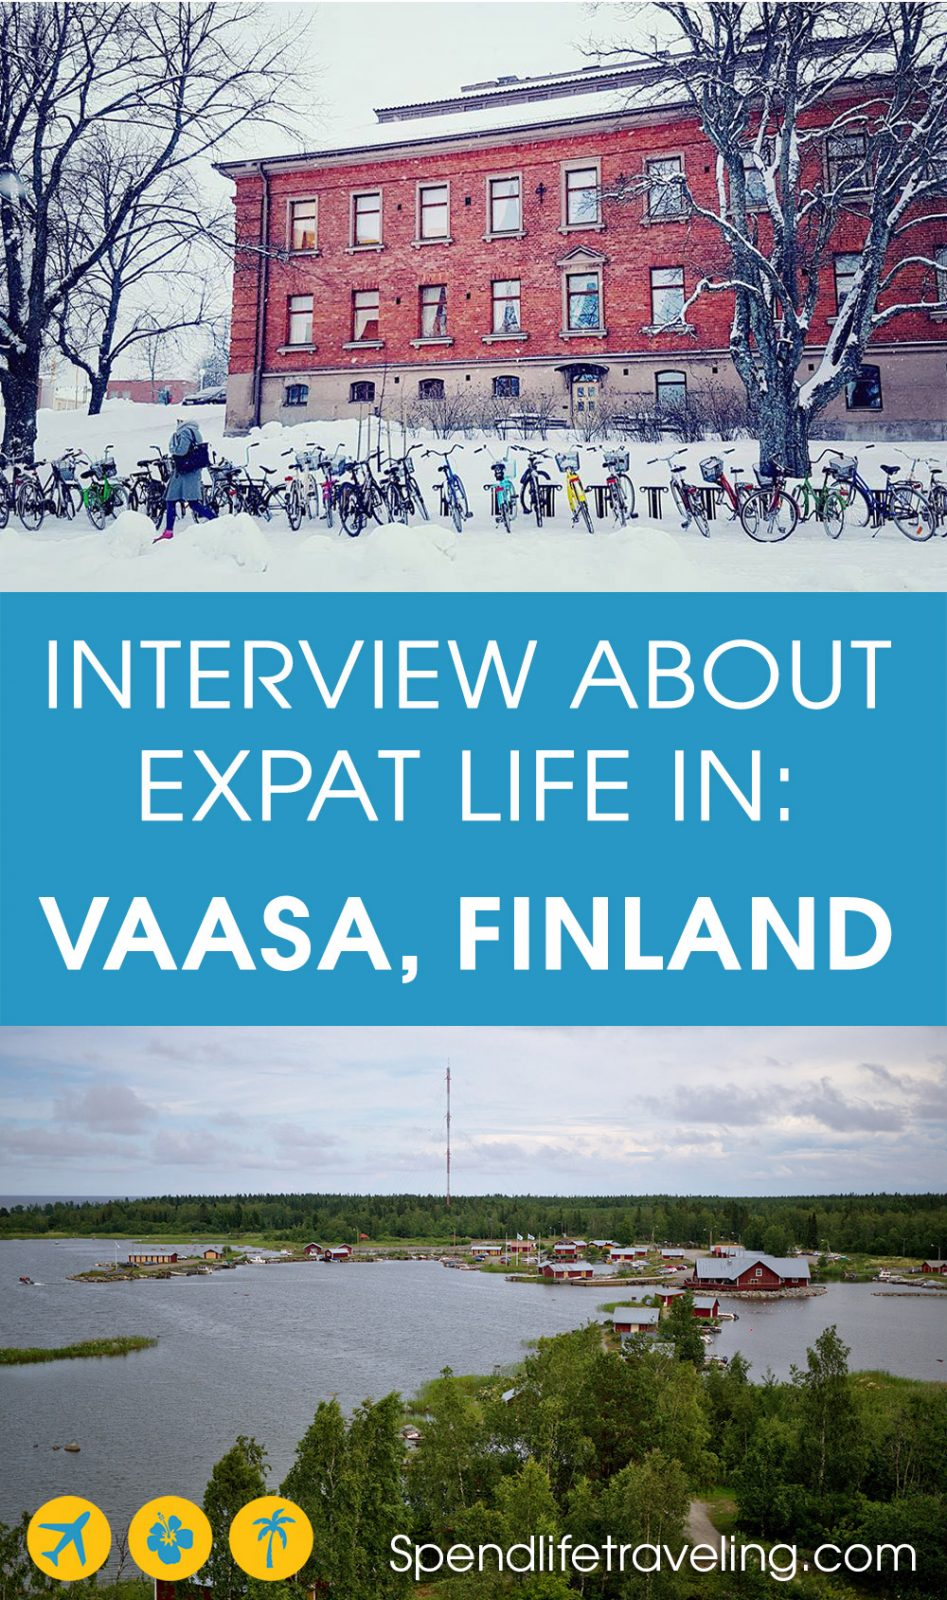 interview with an expat about moving to and living in Vaasa